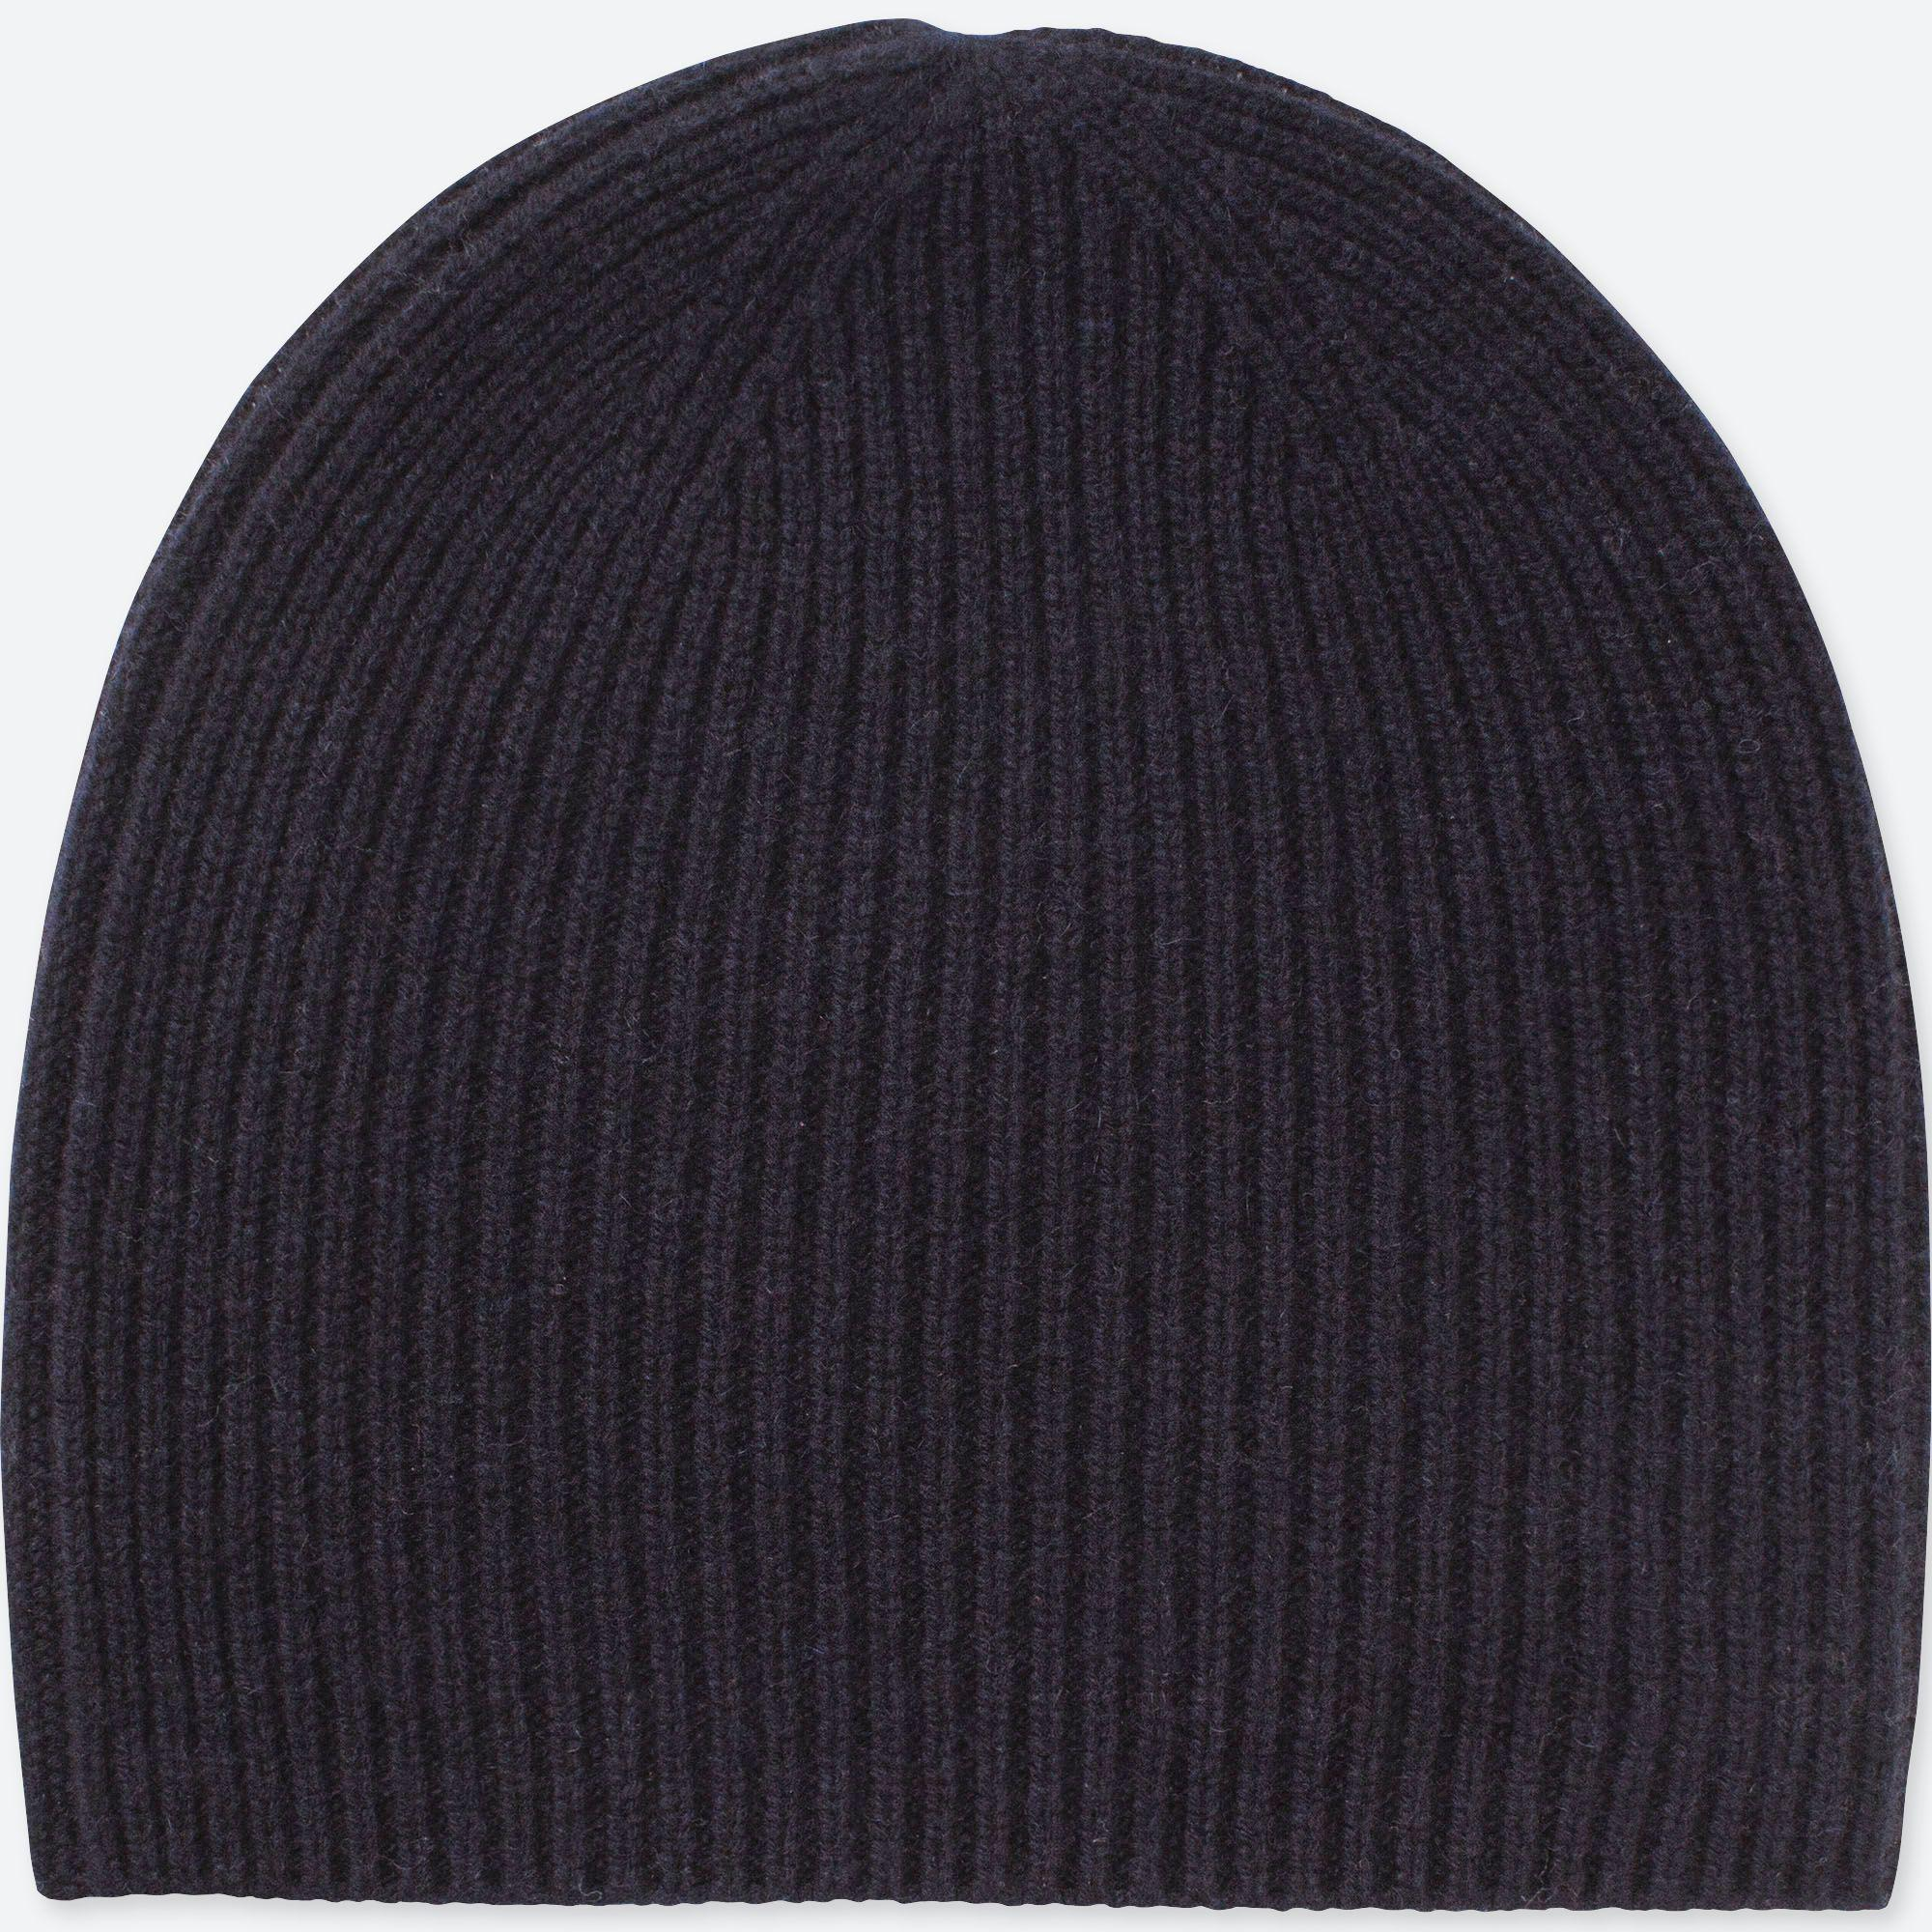 Uniqlo Cashmere Knitted Beanie Hat in Blue - Lyst 1f2c13ad1632